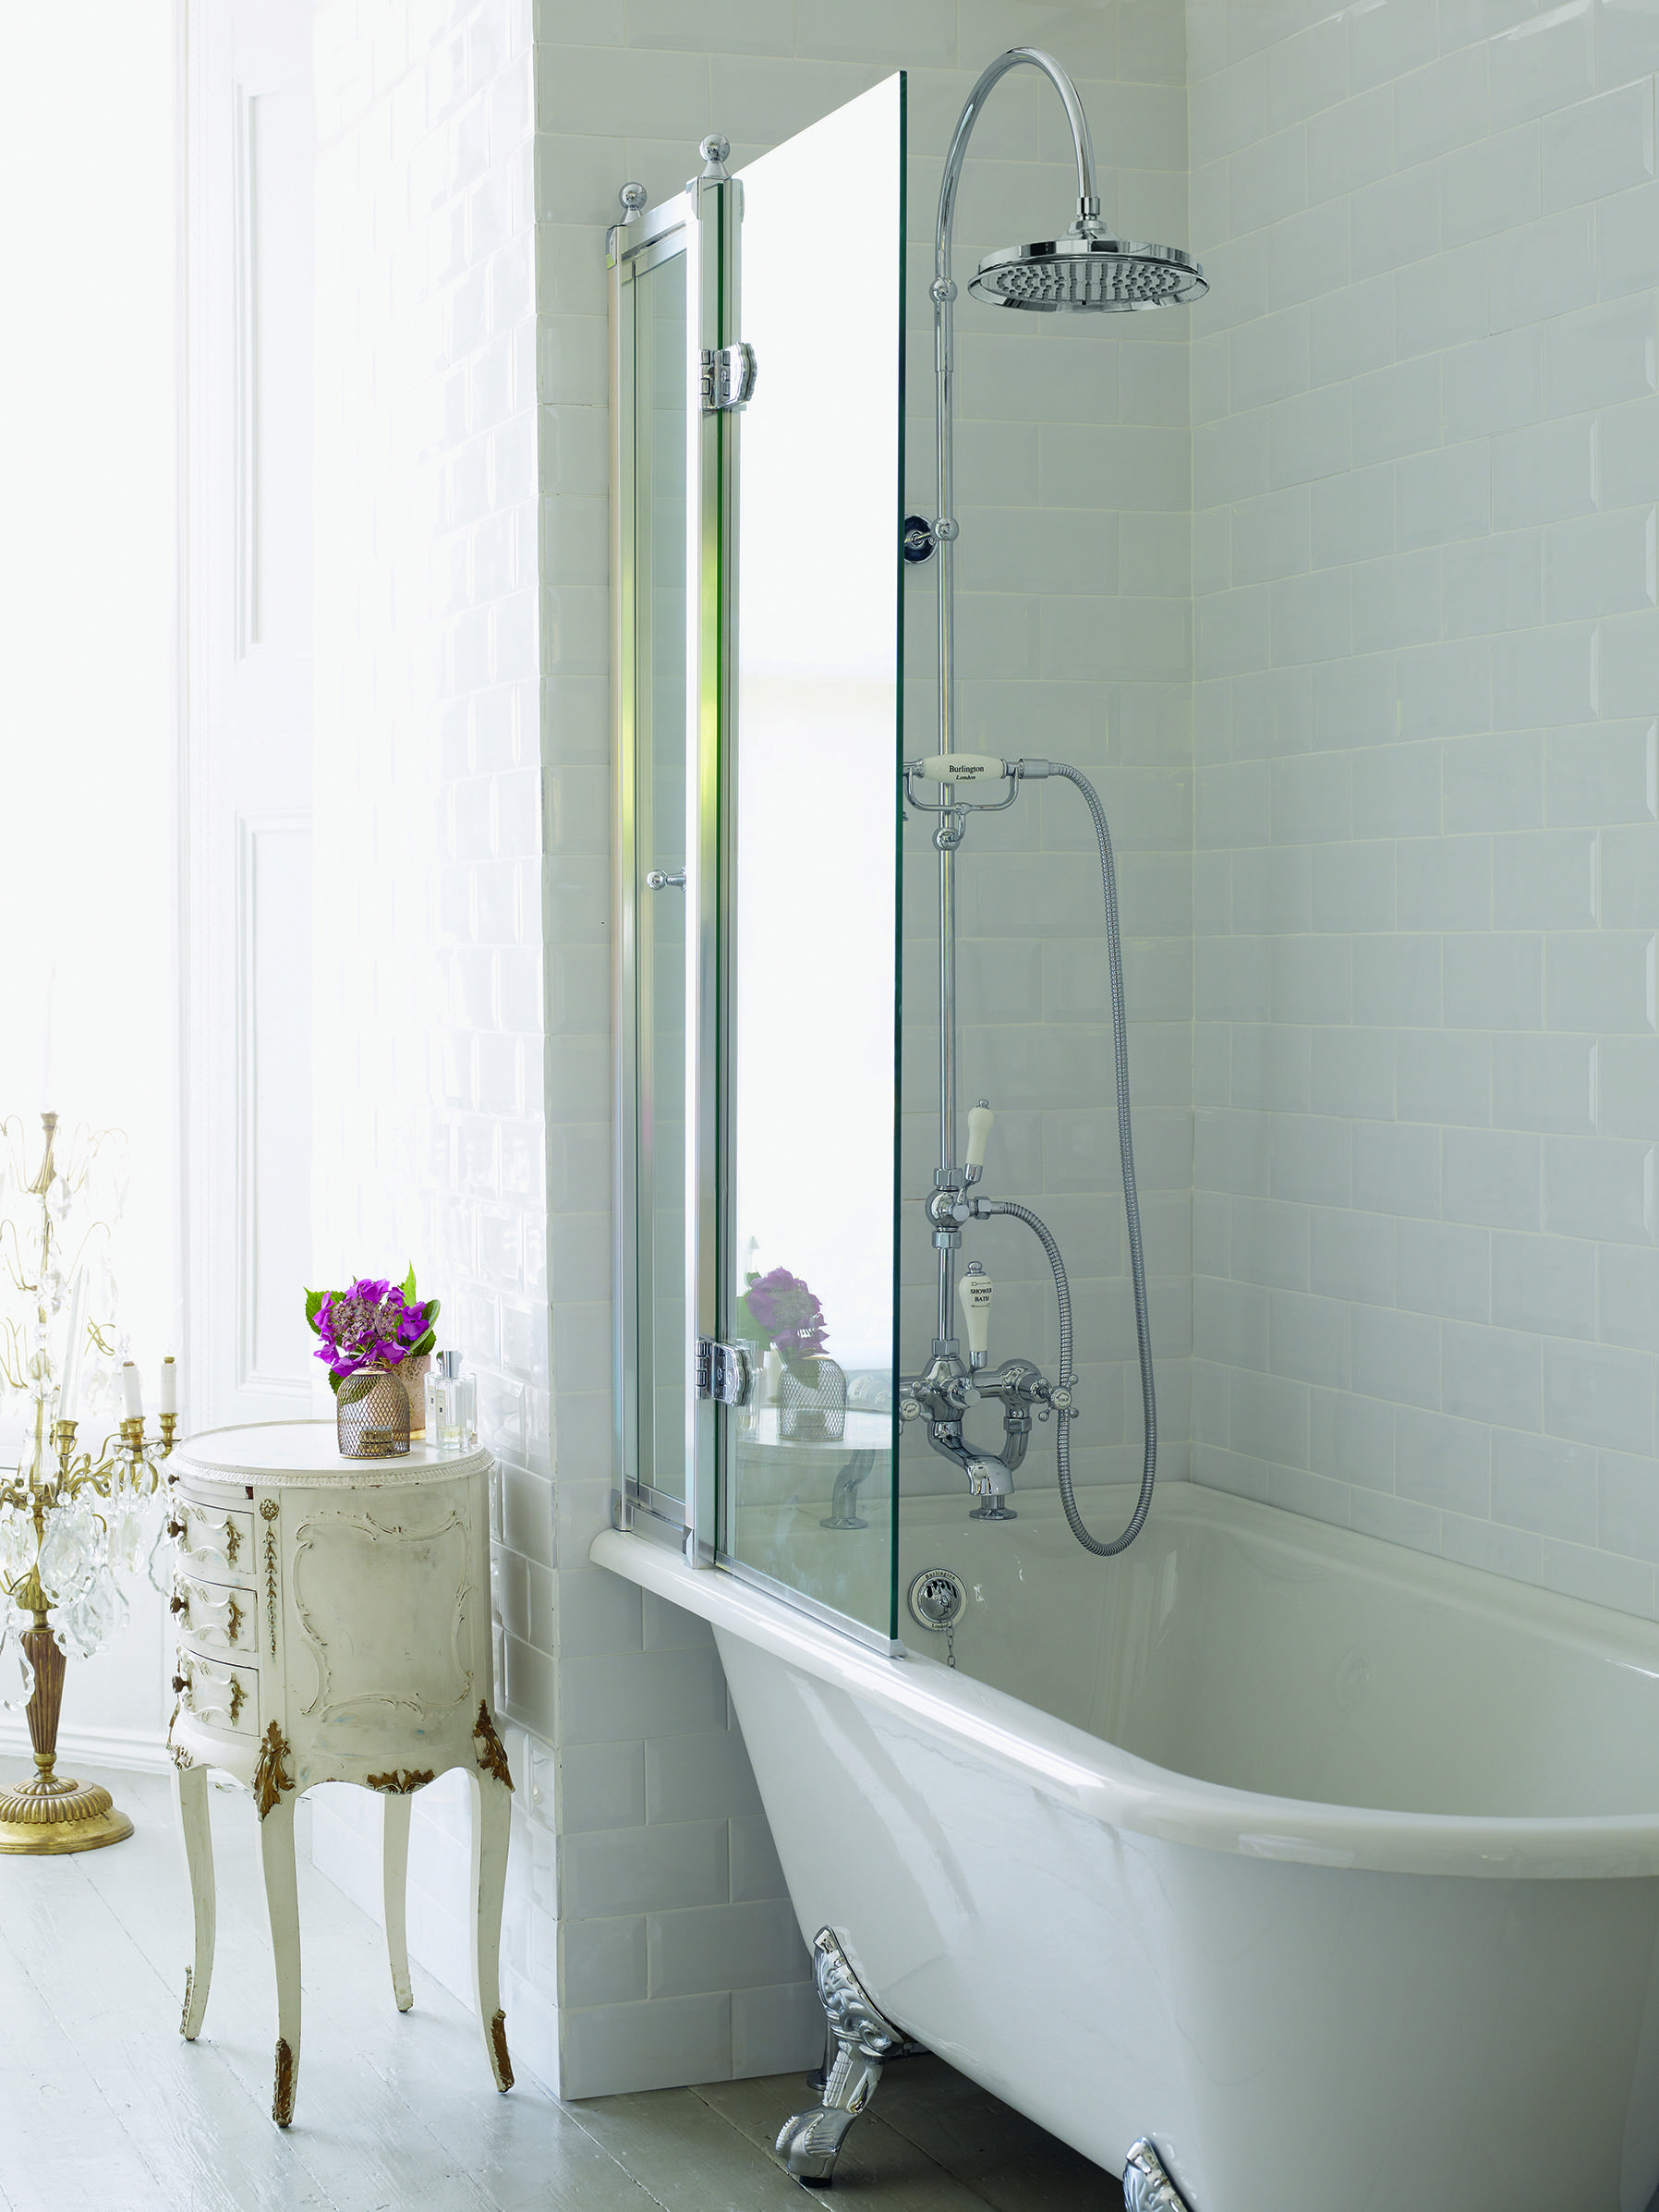 Bath Screen With Access Panel Bath Screen With Access Panel Sku C10 Shower Over Bath Traditional Bathroom Small Bathroom With Shower